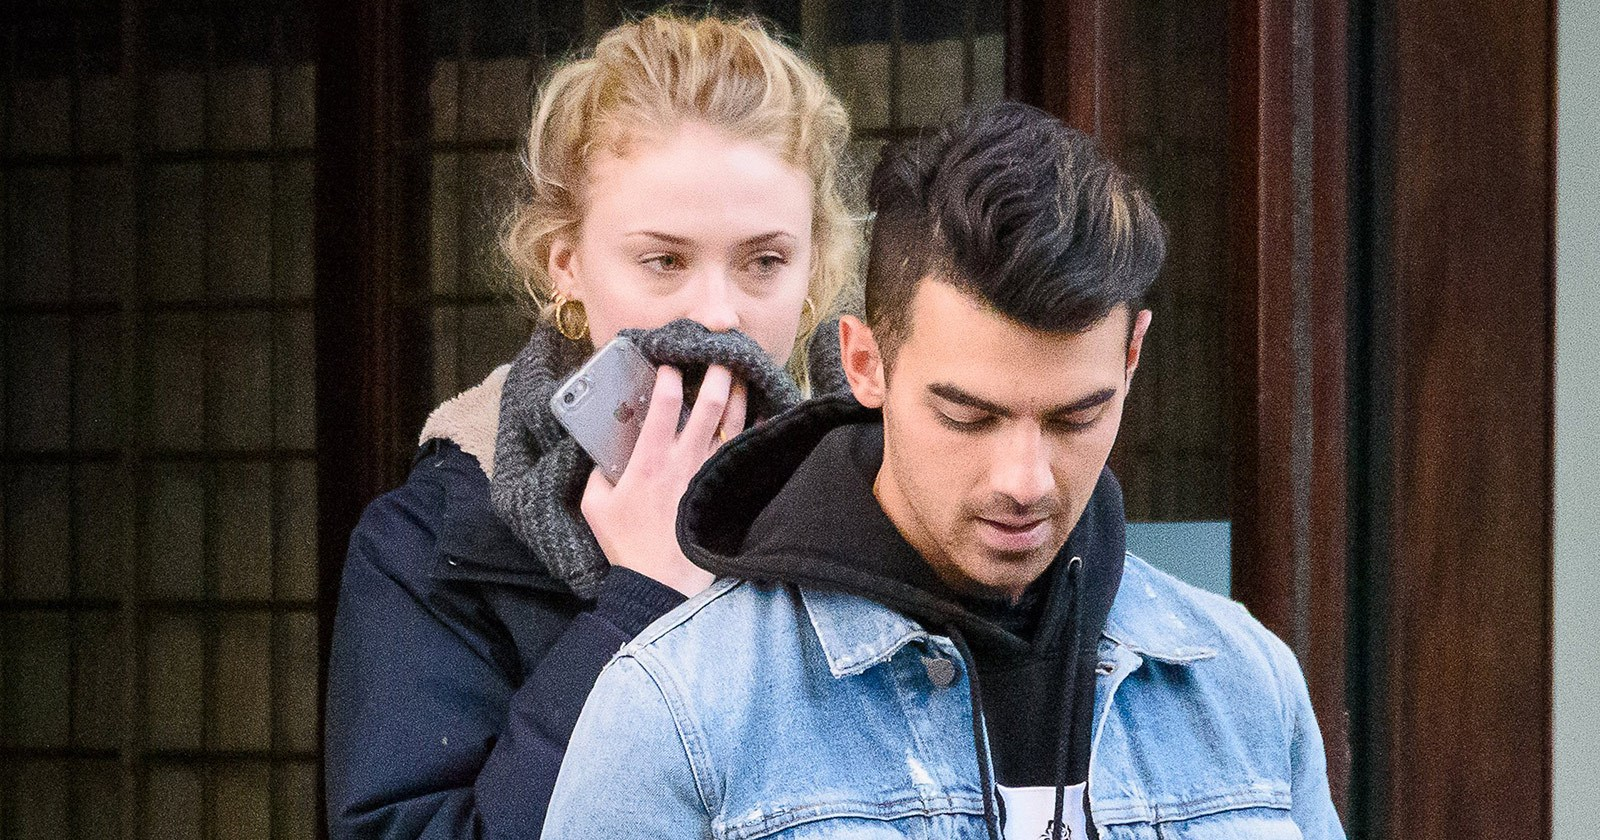 Joe Jonas and Sophie Turner Step Out Together in NYC as Romance Heats Up